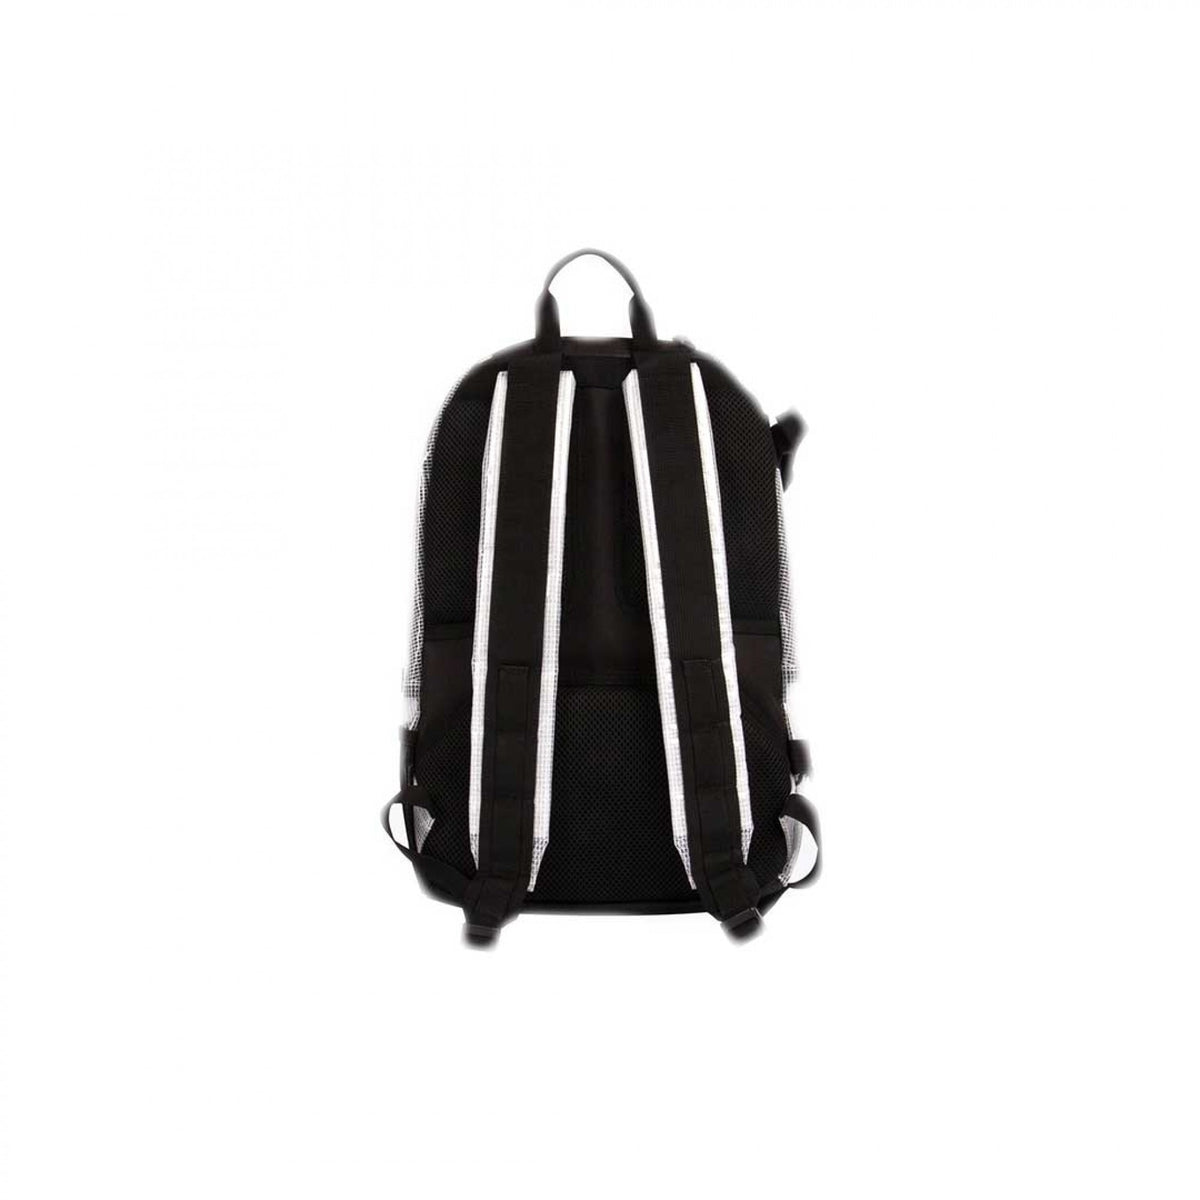 Translucent Backpack (Ltd Edition)